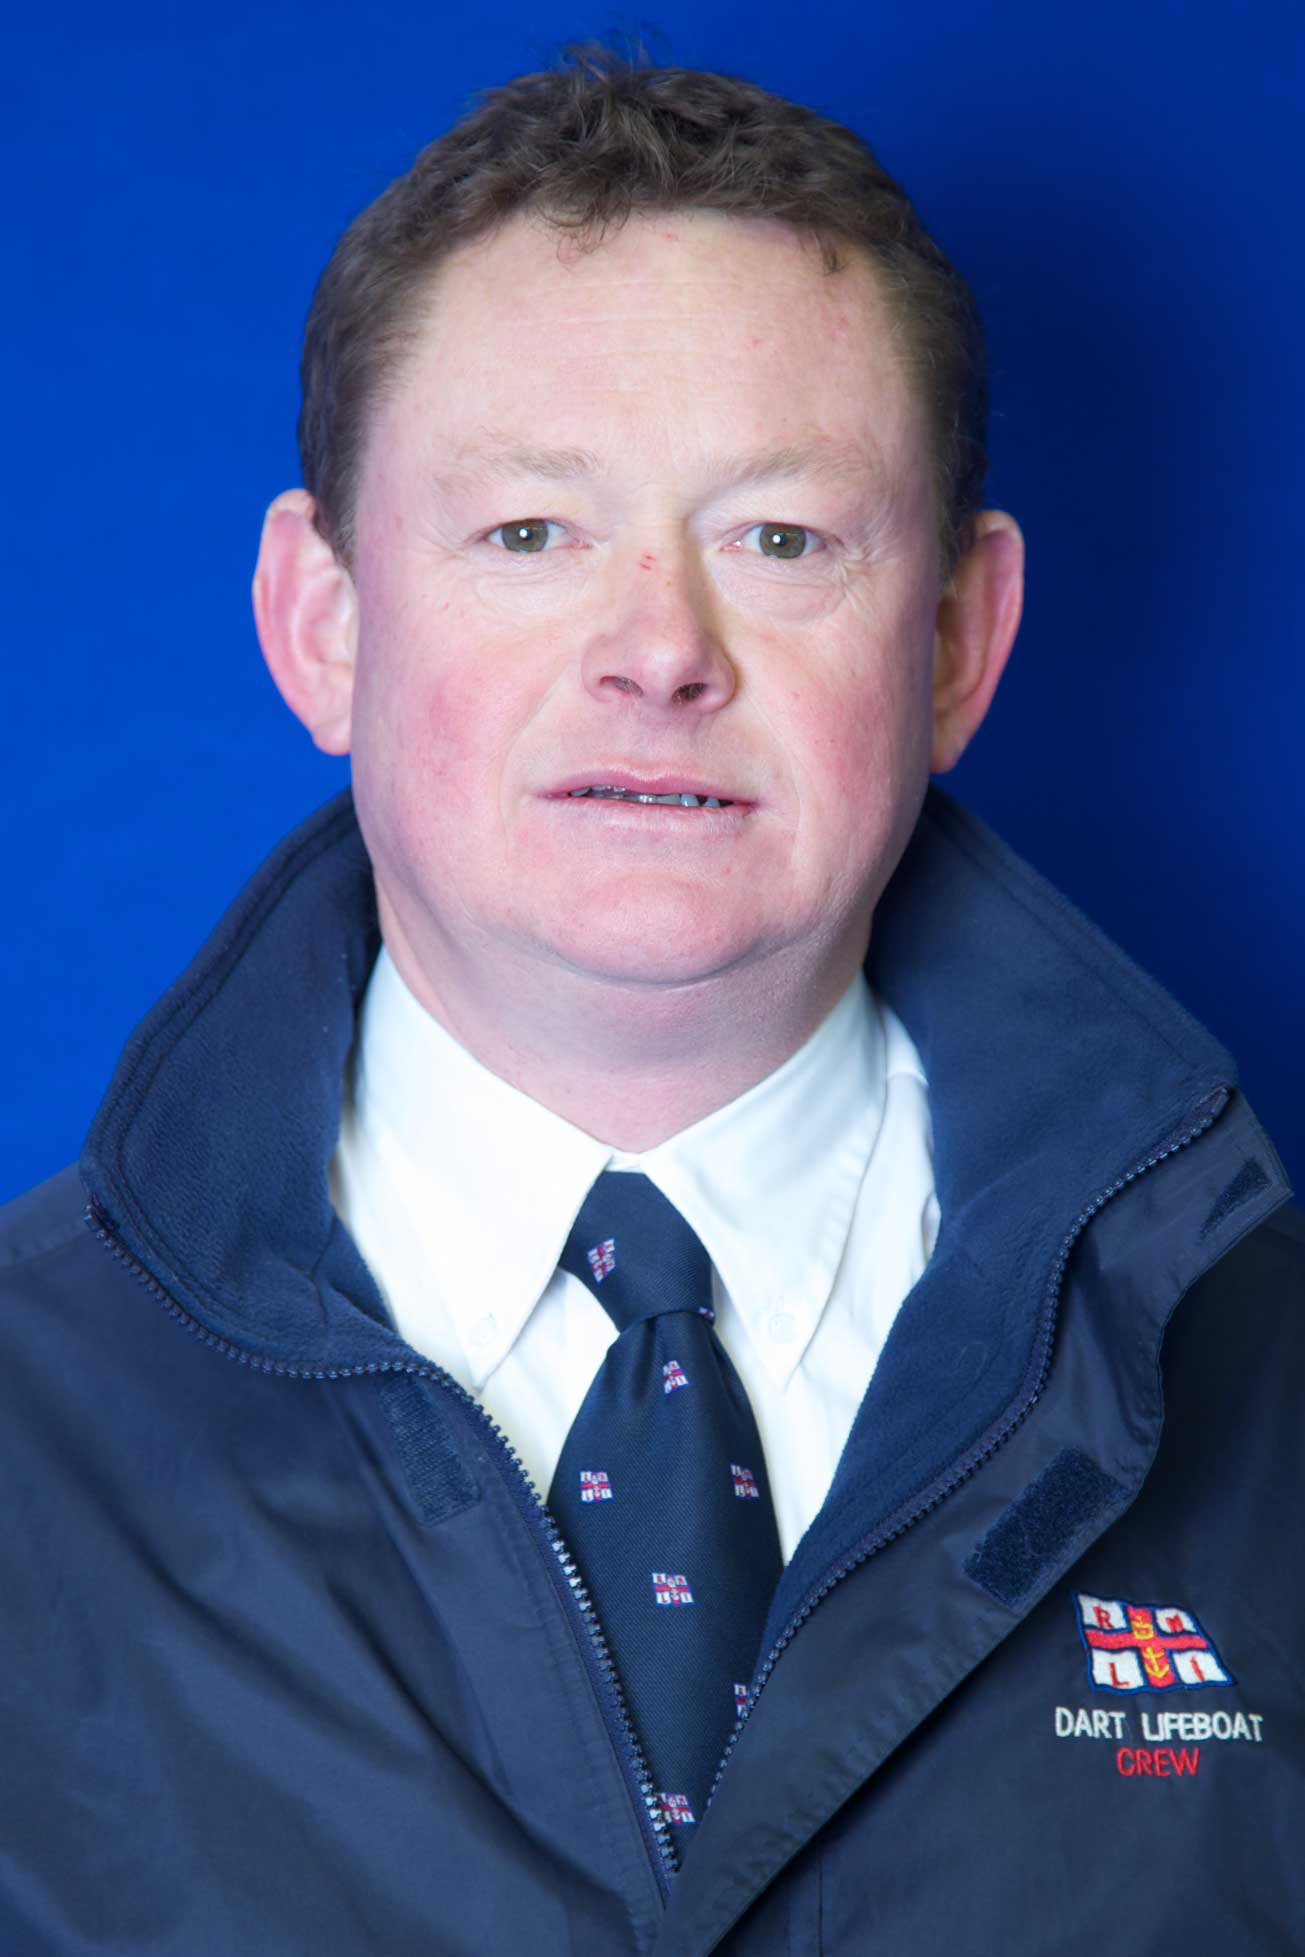 Dai Richards, Operations Team, RNLI Dart